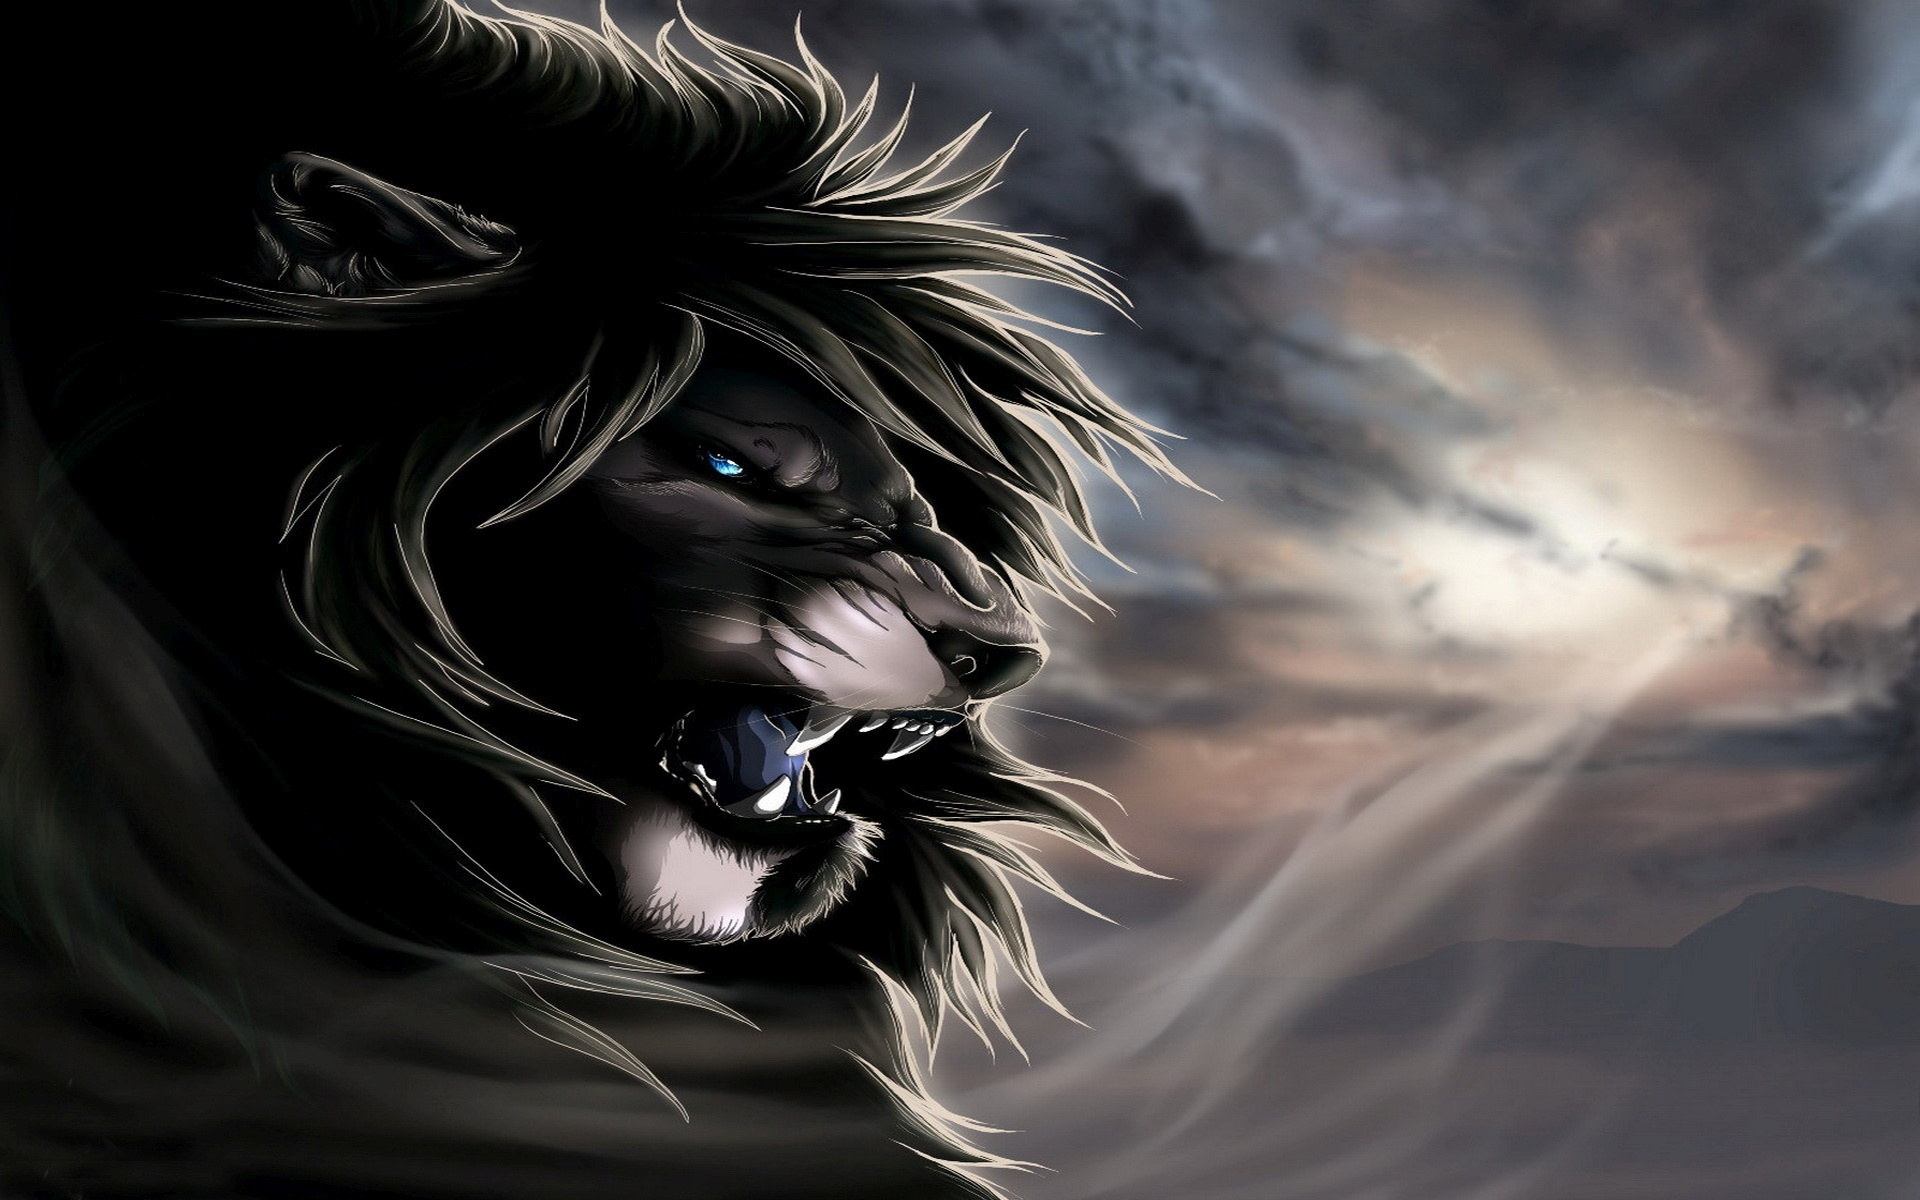 Angry Lion Wallpaper - Angry Black Lion , HD Wallpaper & Backgrounds